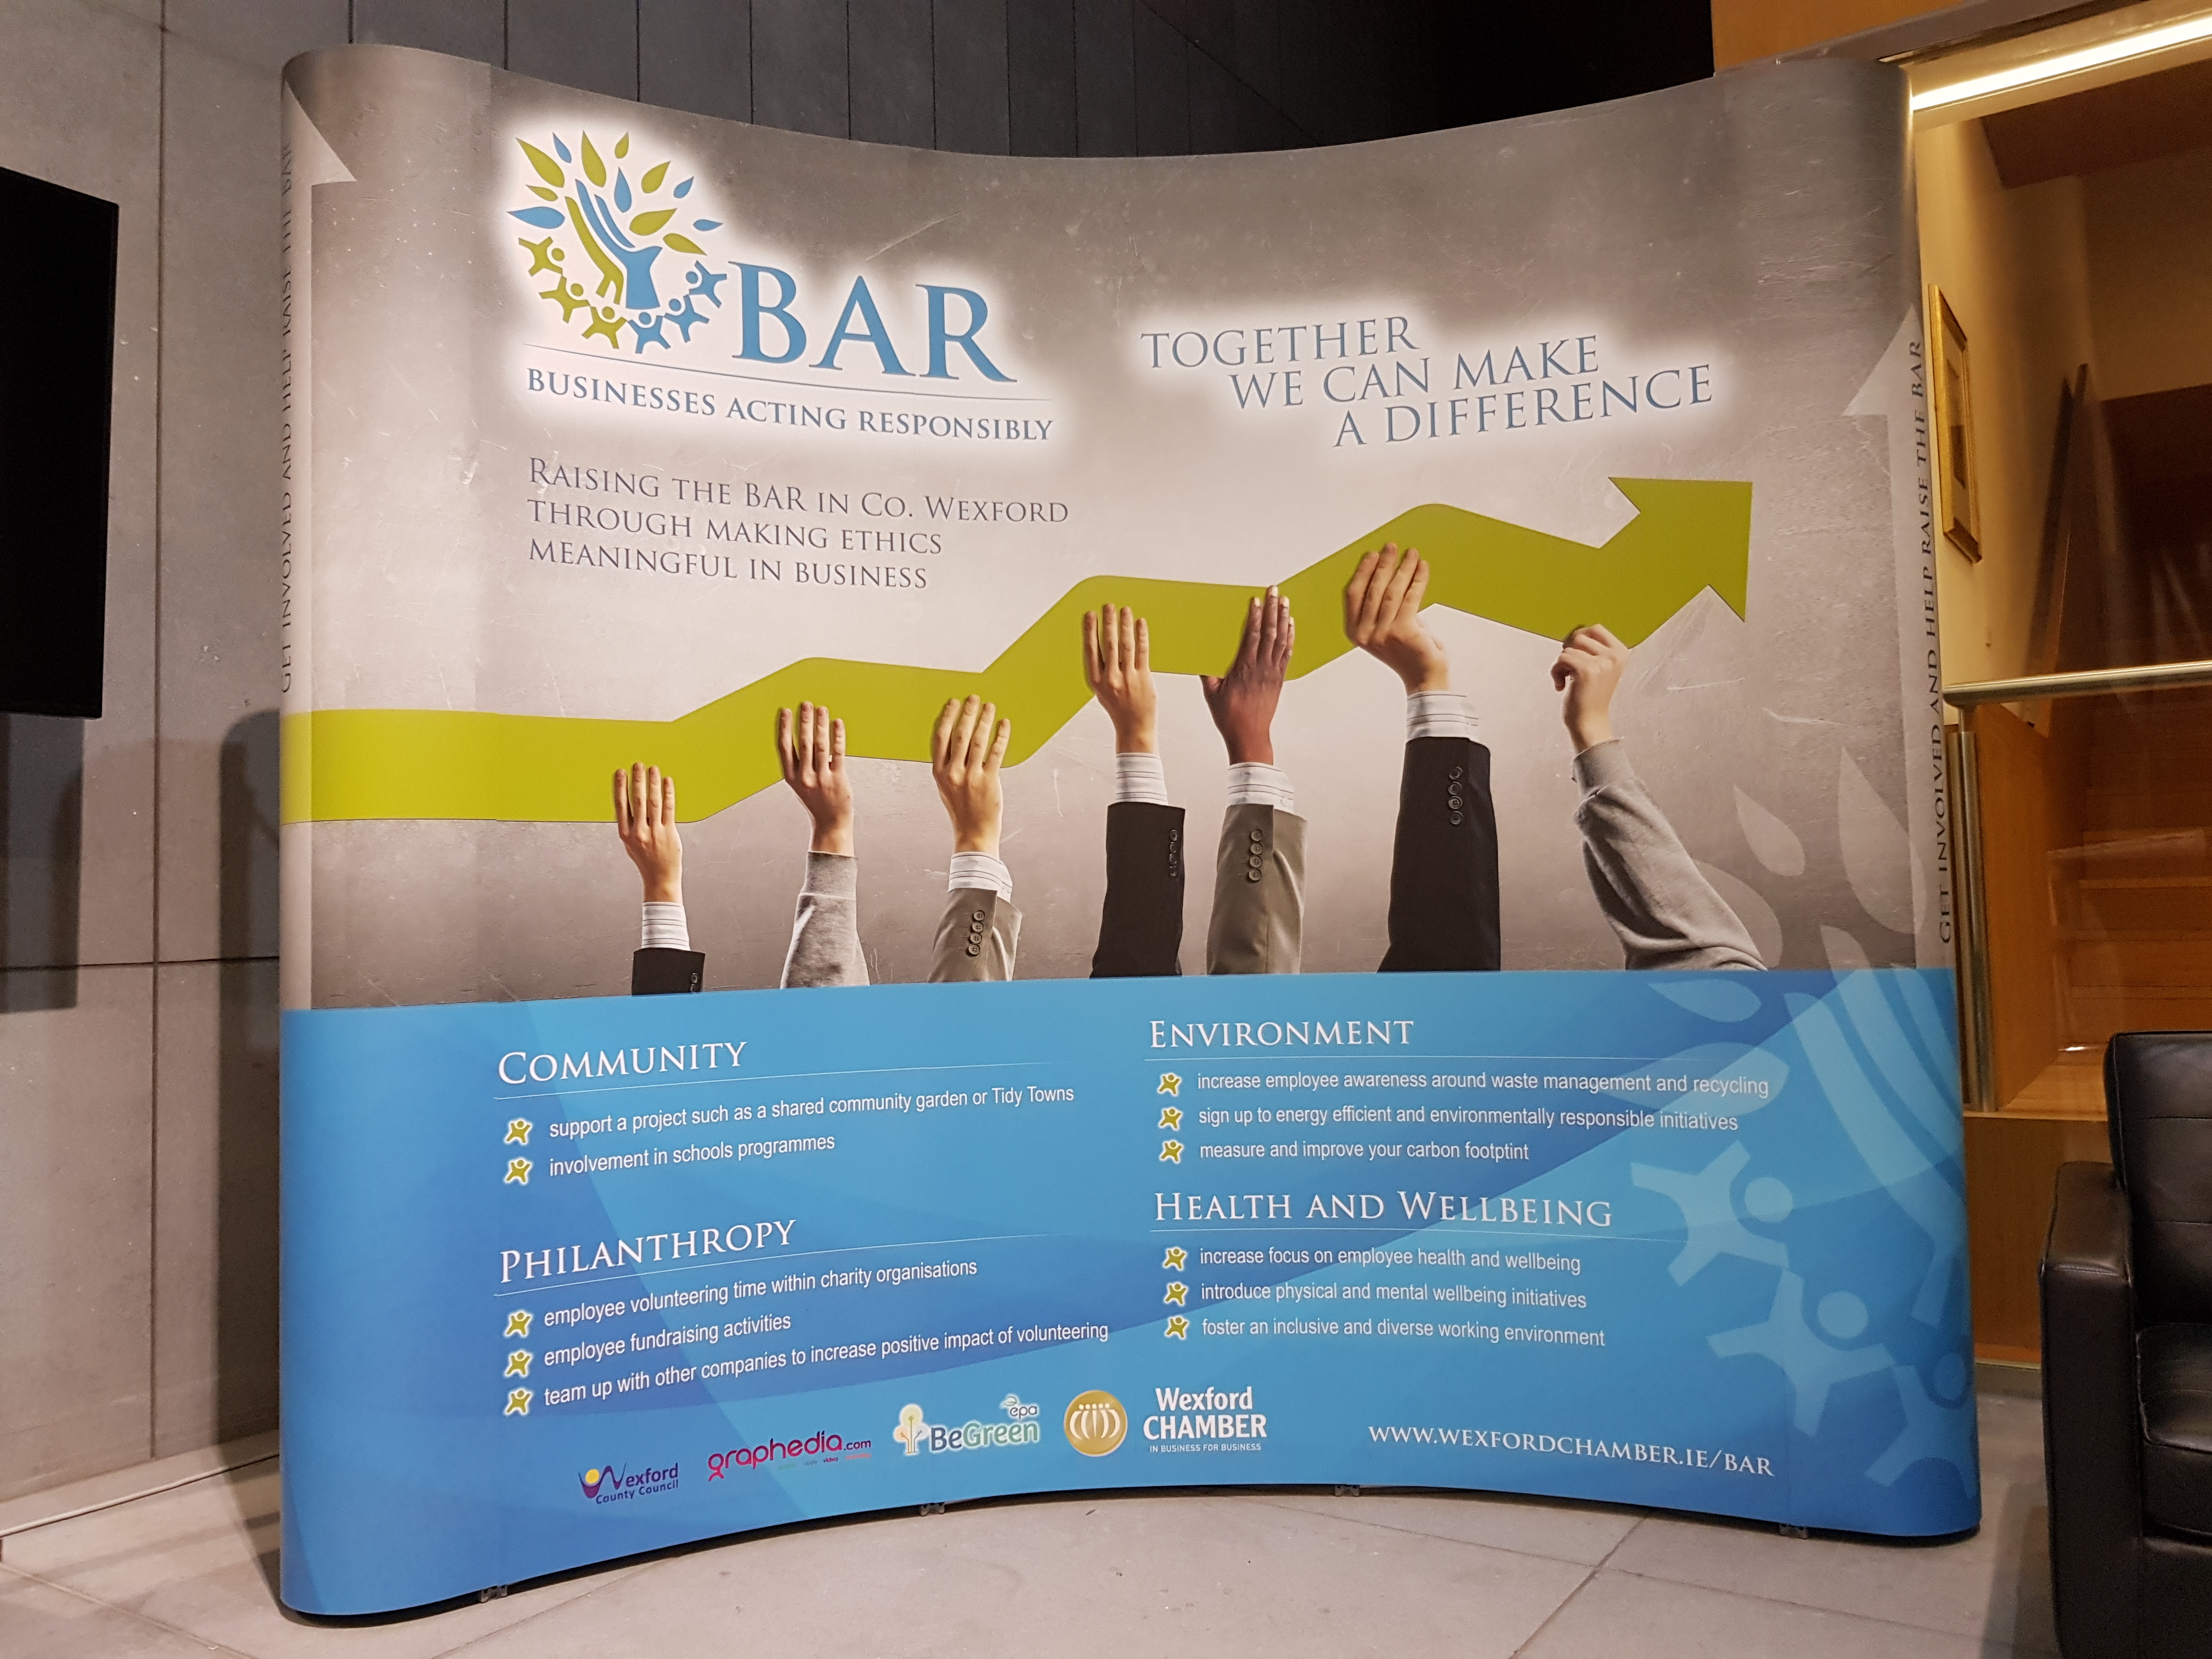 business acting resposibly (BAR) 3 x 3 pop up display